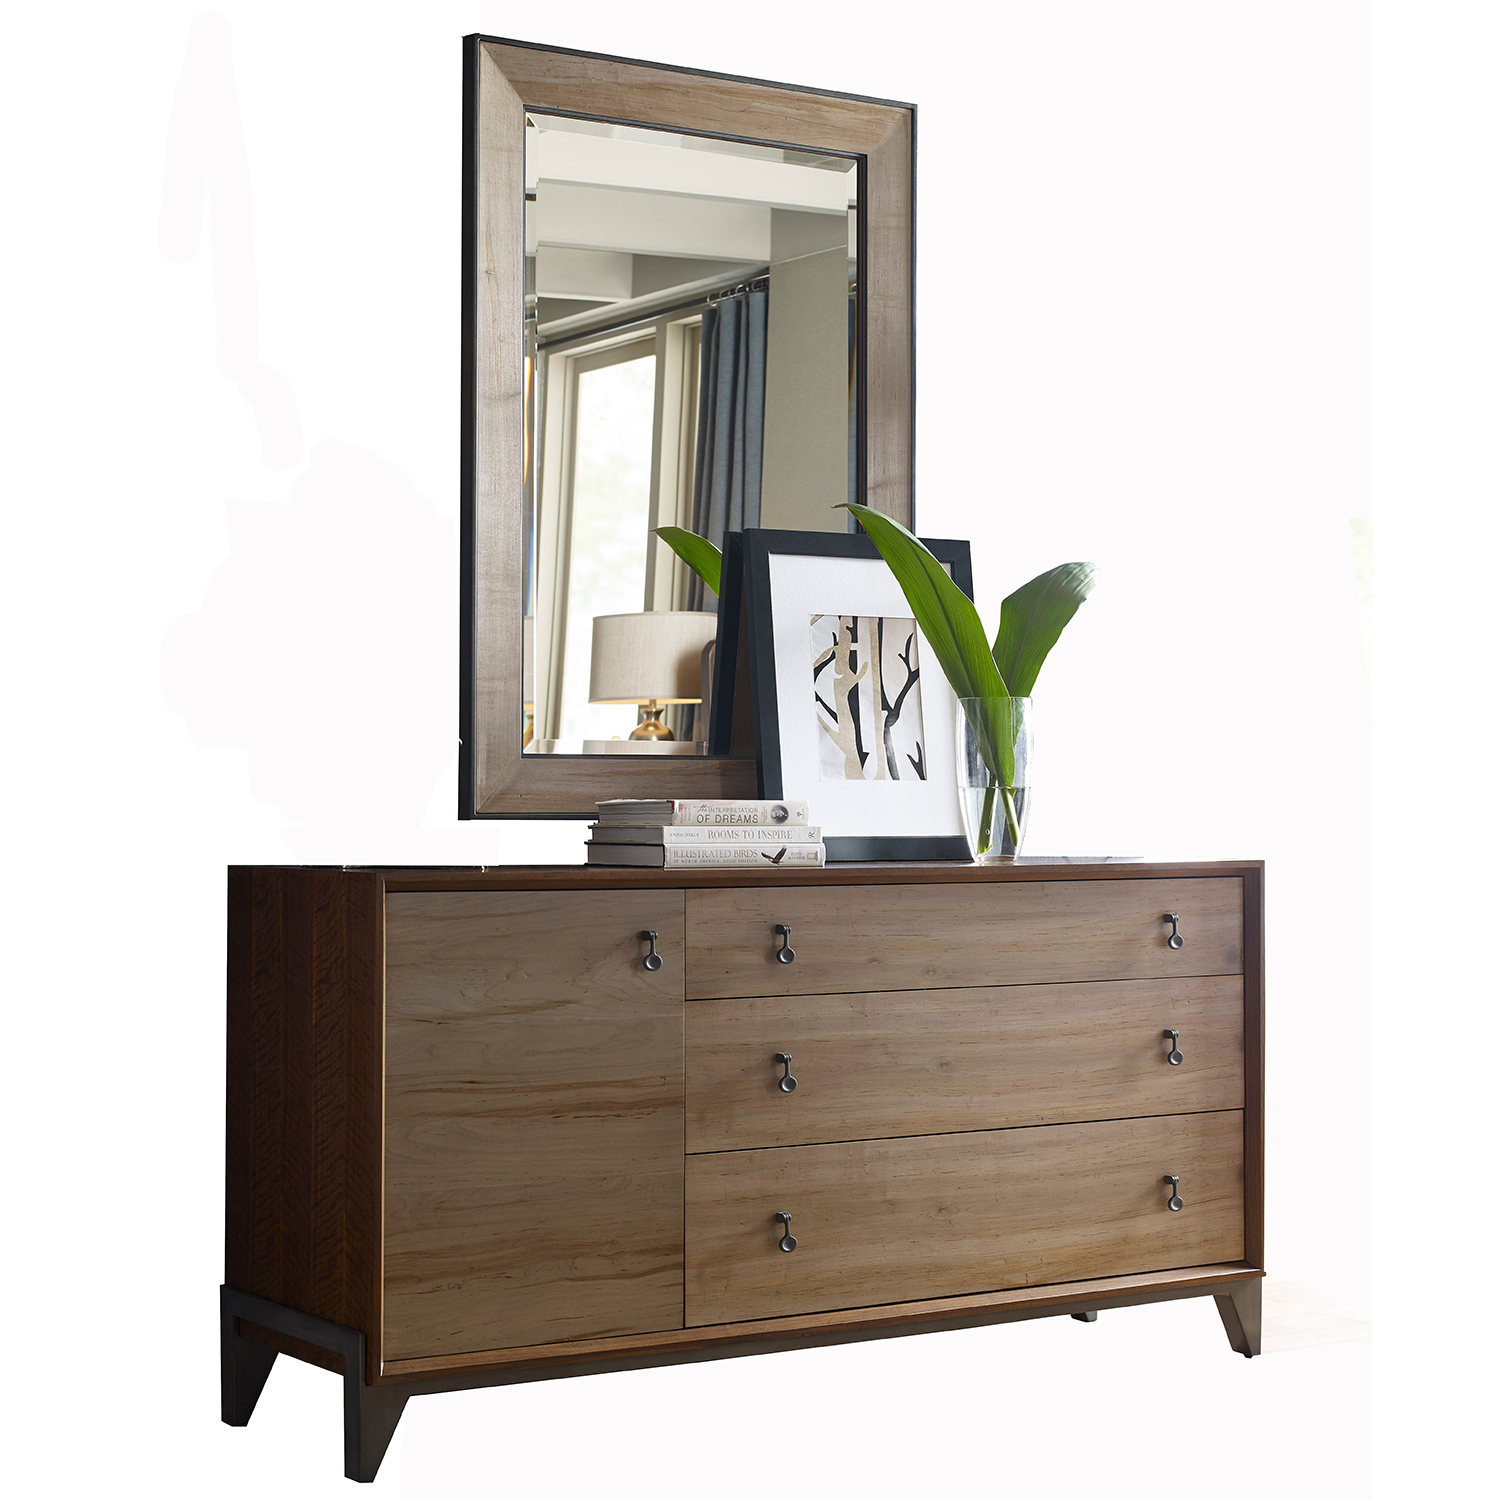 American drew ad modern synergy chevron maple king bedroom set - Contemporary maple bedroom furniture ...